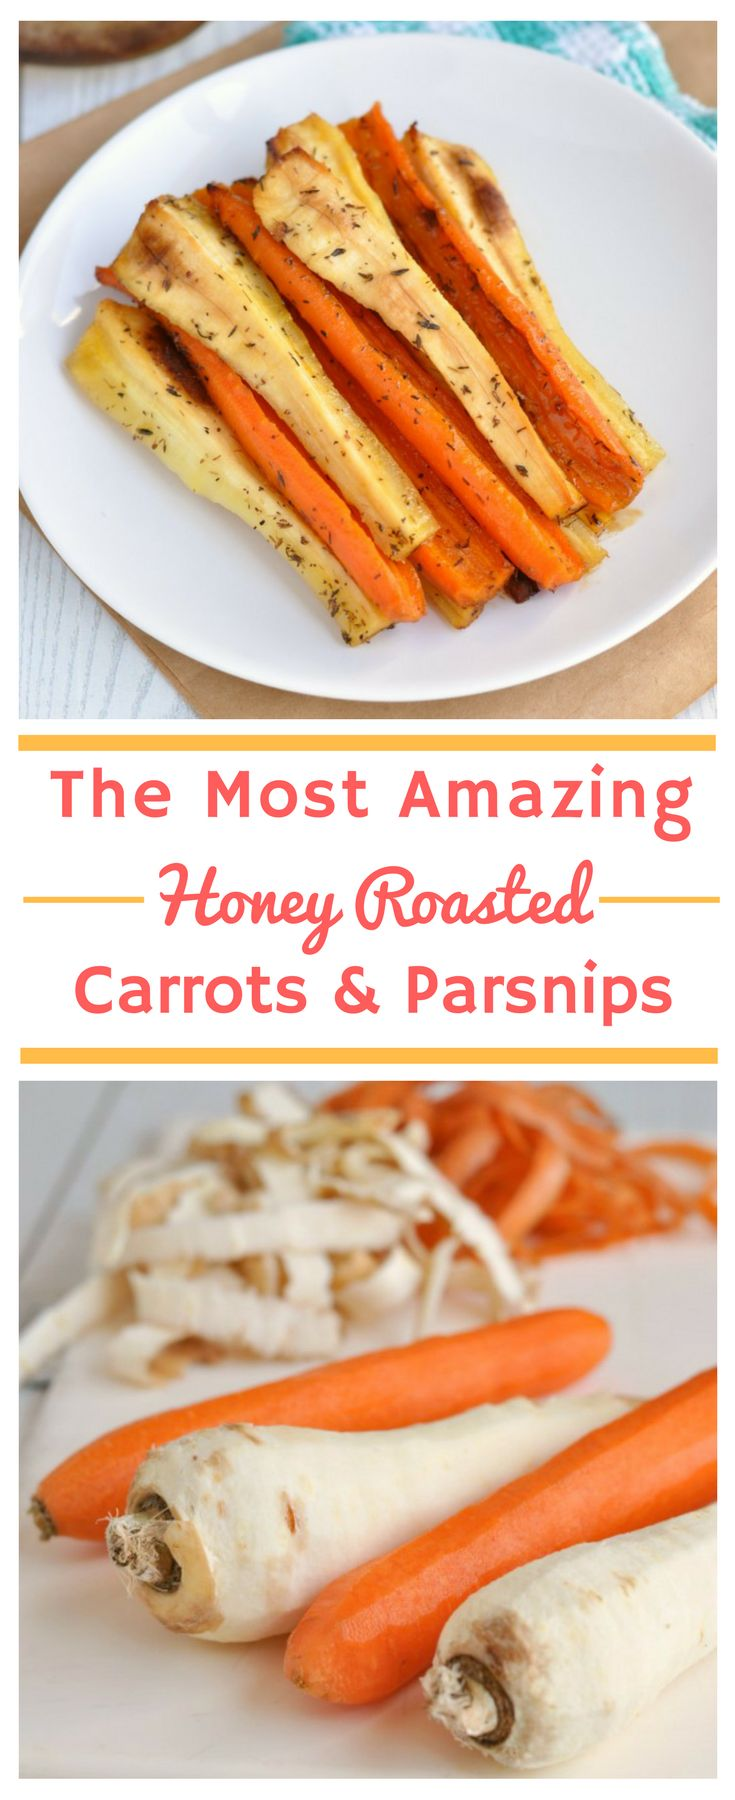 The Most Amazing Honey Roasted Carrots and Parsnips | Whether you're looking for the perfect Thanksgiving side dish recipe or Christmas side dish recipe, this is it! Not only do these roast vegetables taste amazing, but they're also a healthy side dish op